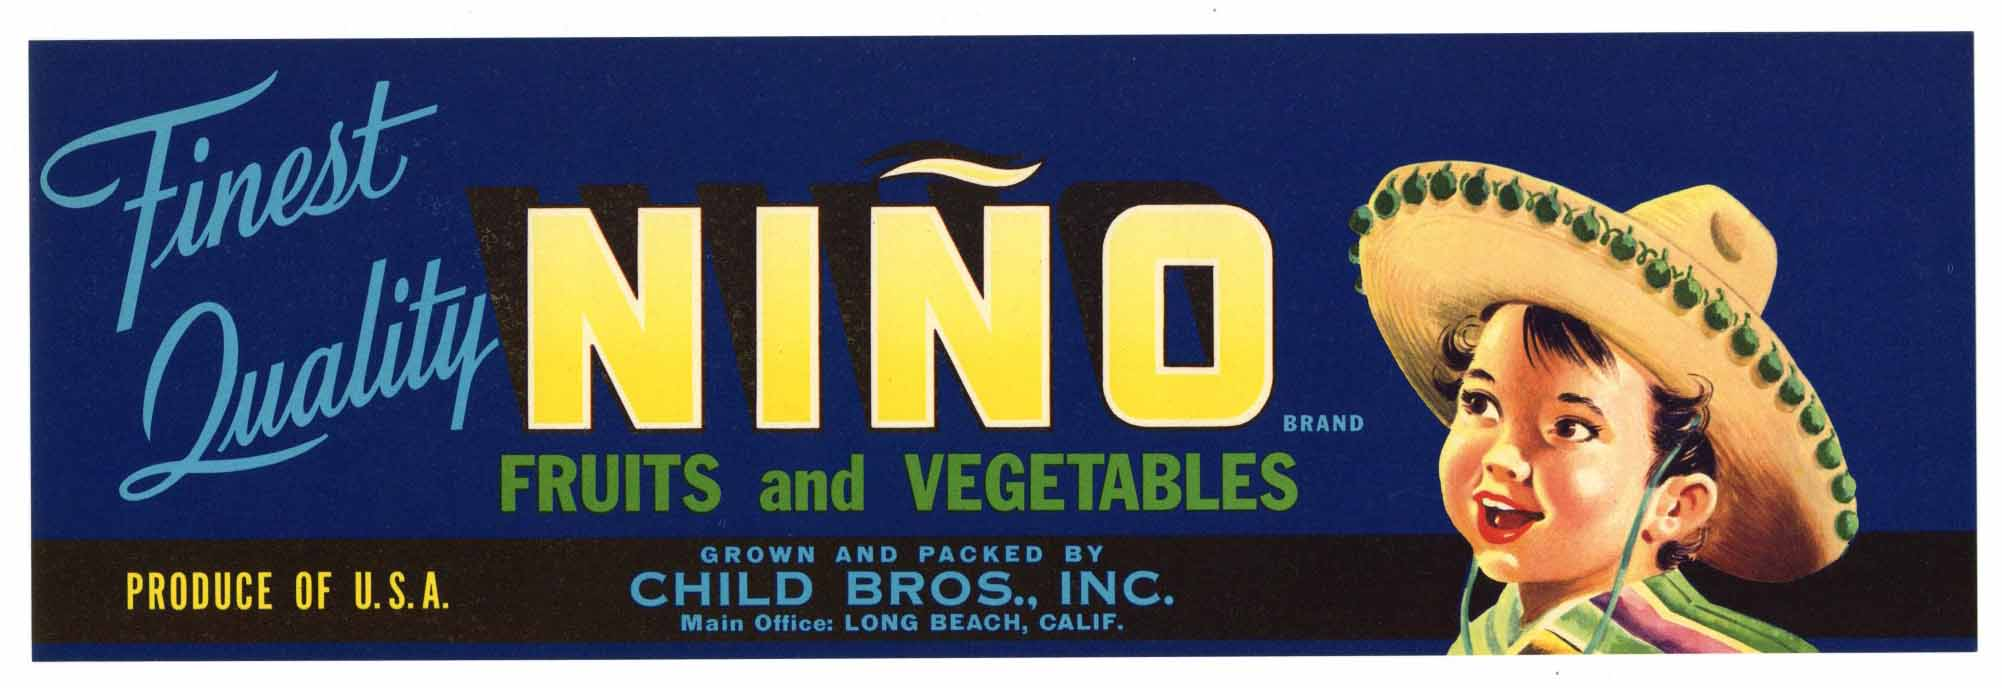 Nino Brand Vintage Fruit Crate Label, blue